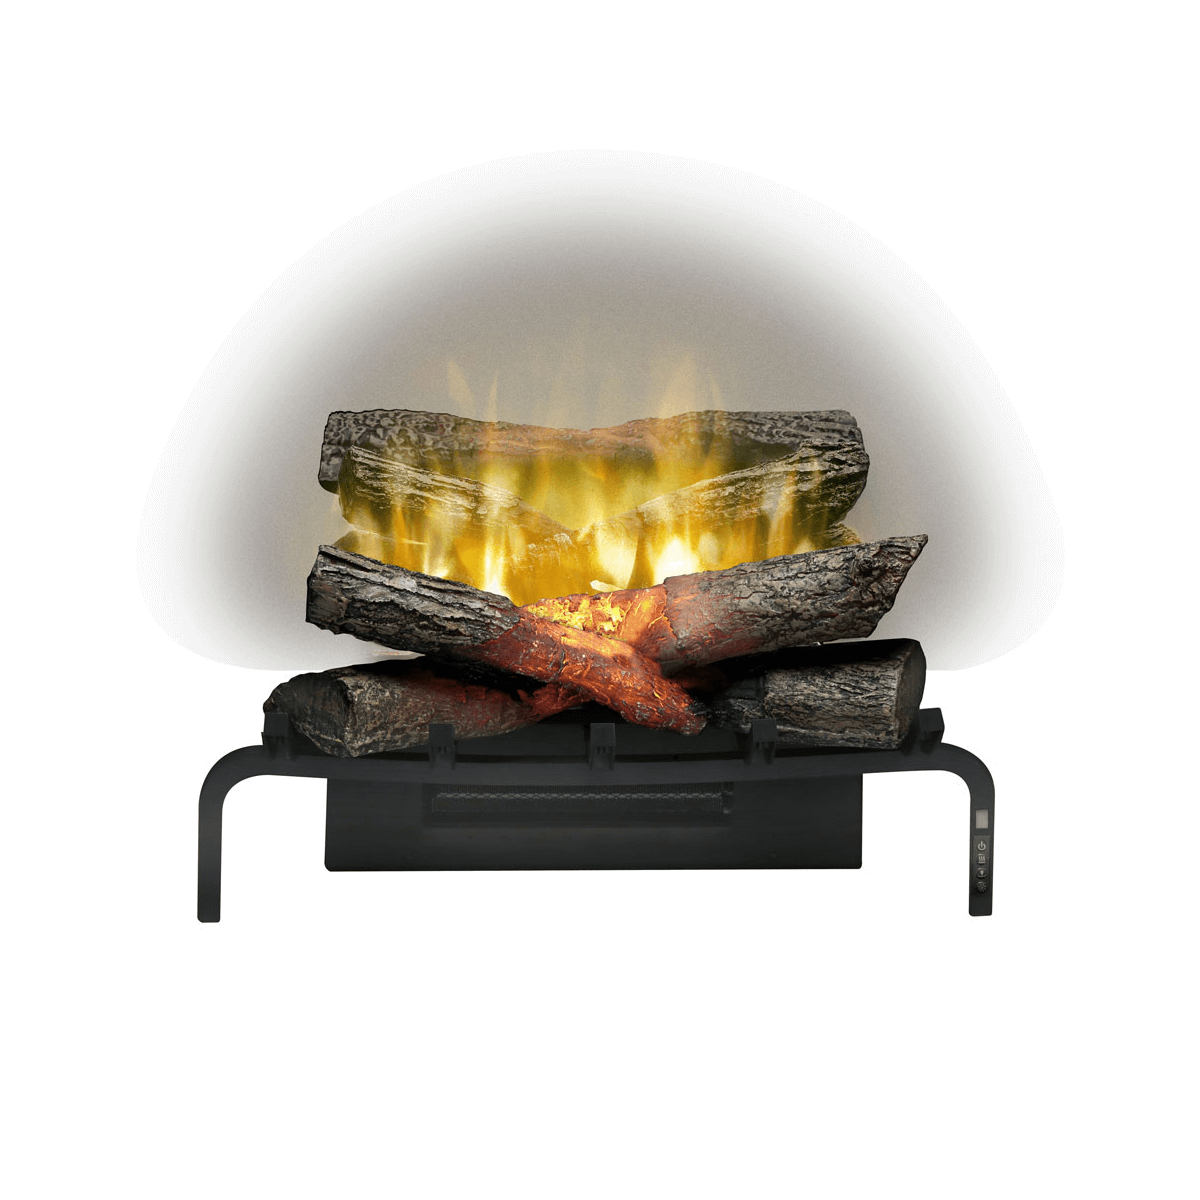 "Dimplex 20"" Revillusion Masonry Fireplace Electric Log Set - Crackle Fireplaces"